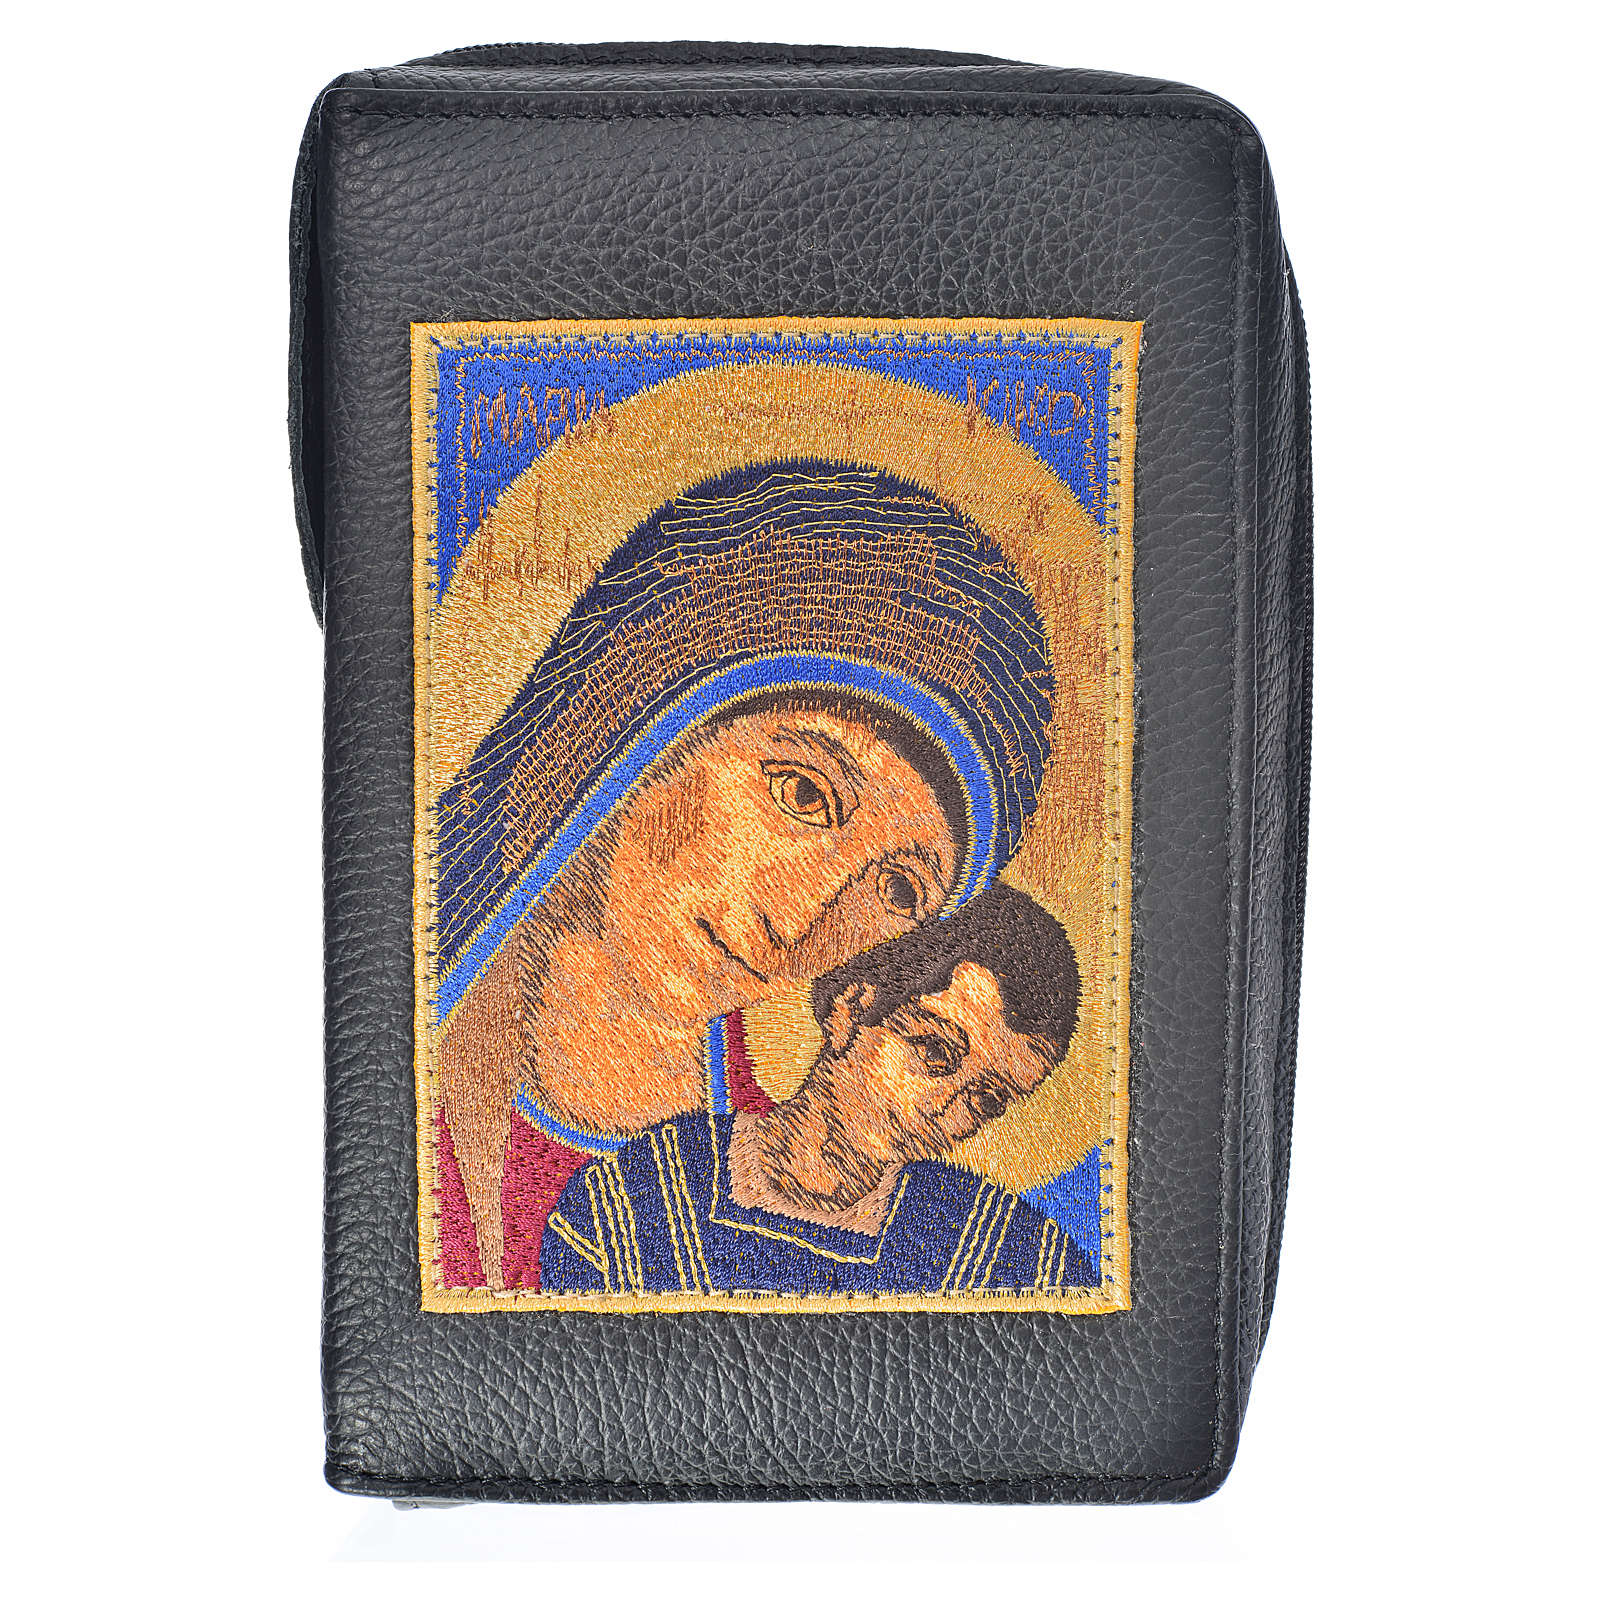 Morning and Evening Prayer cover in black genuine leather with image of Our Lady of Kiko 4